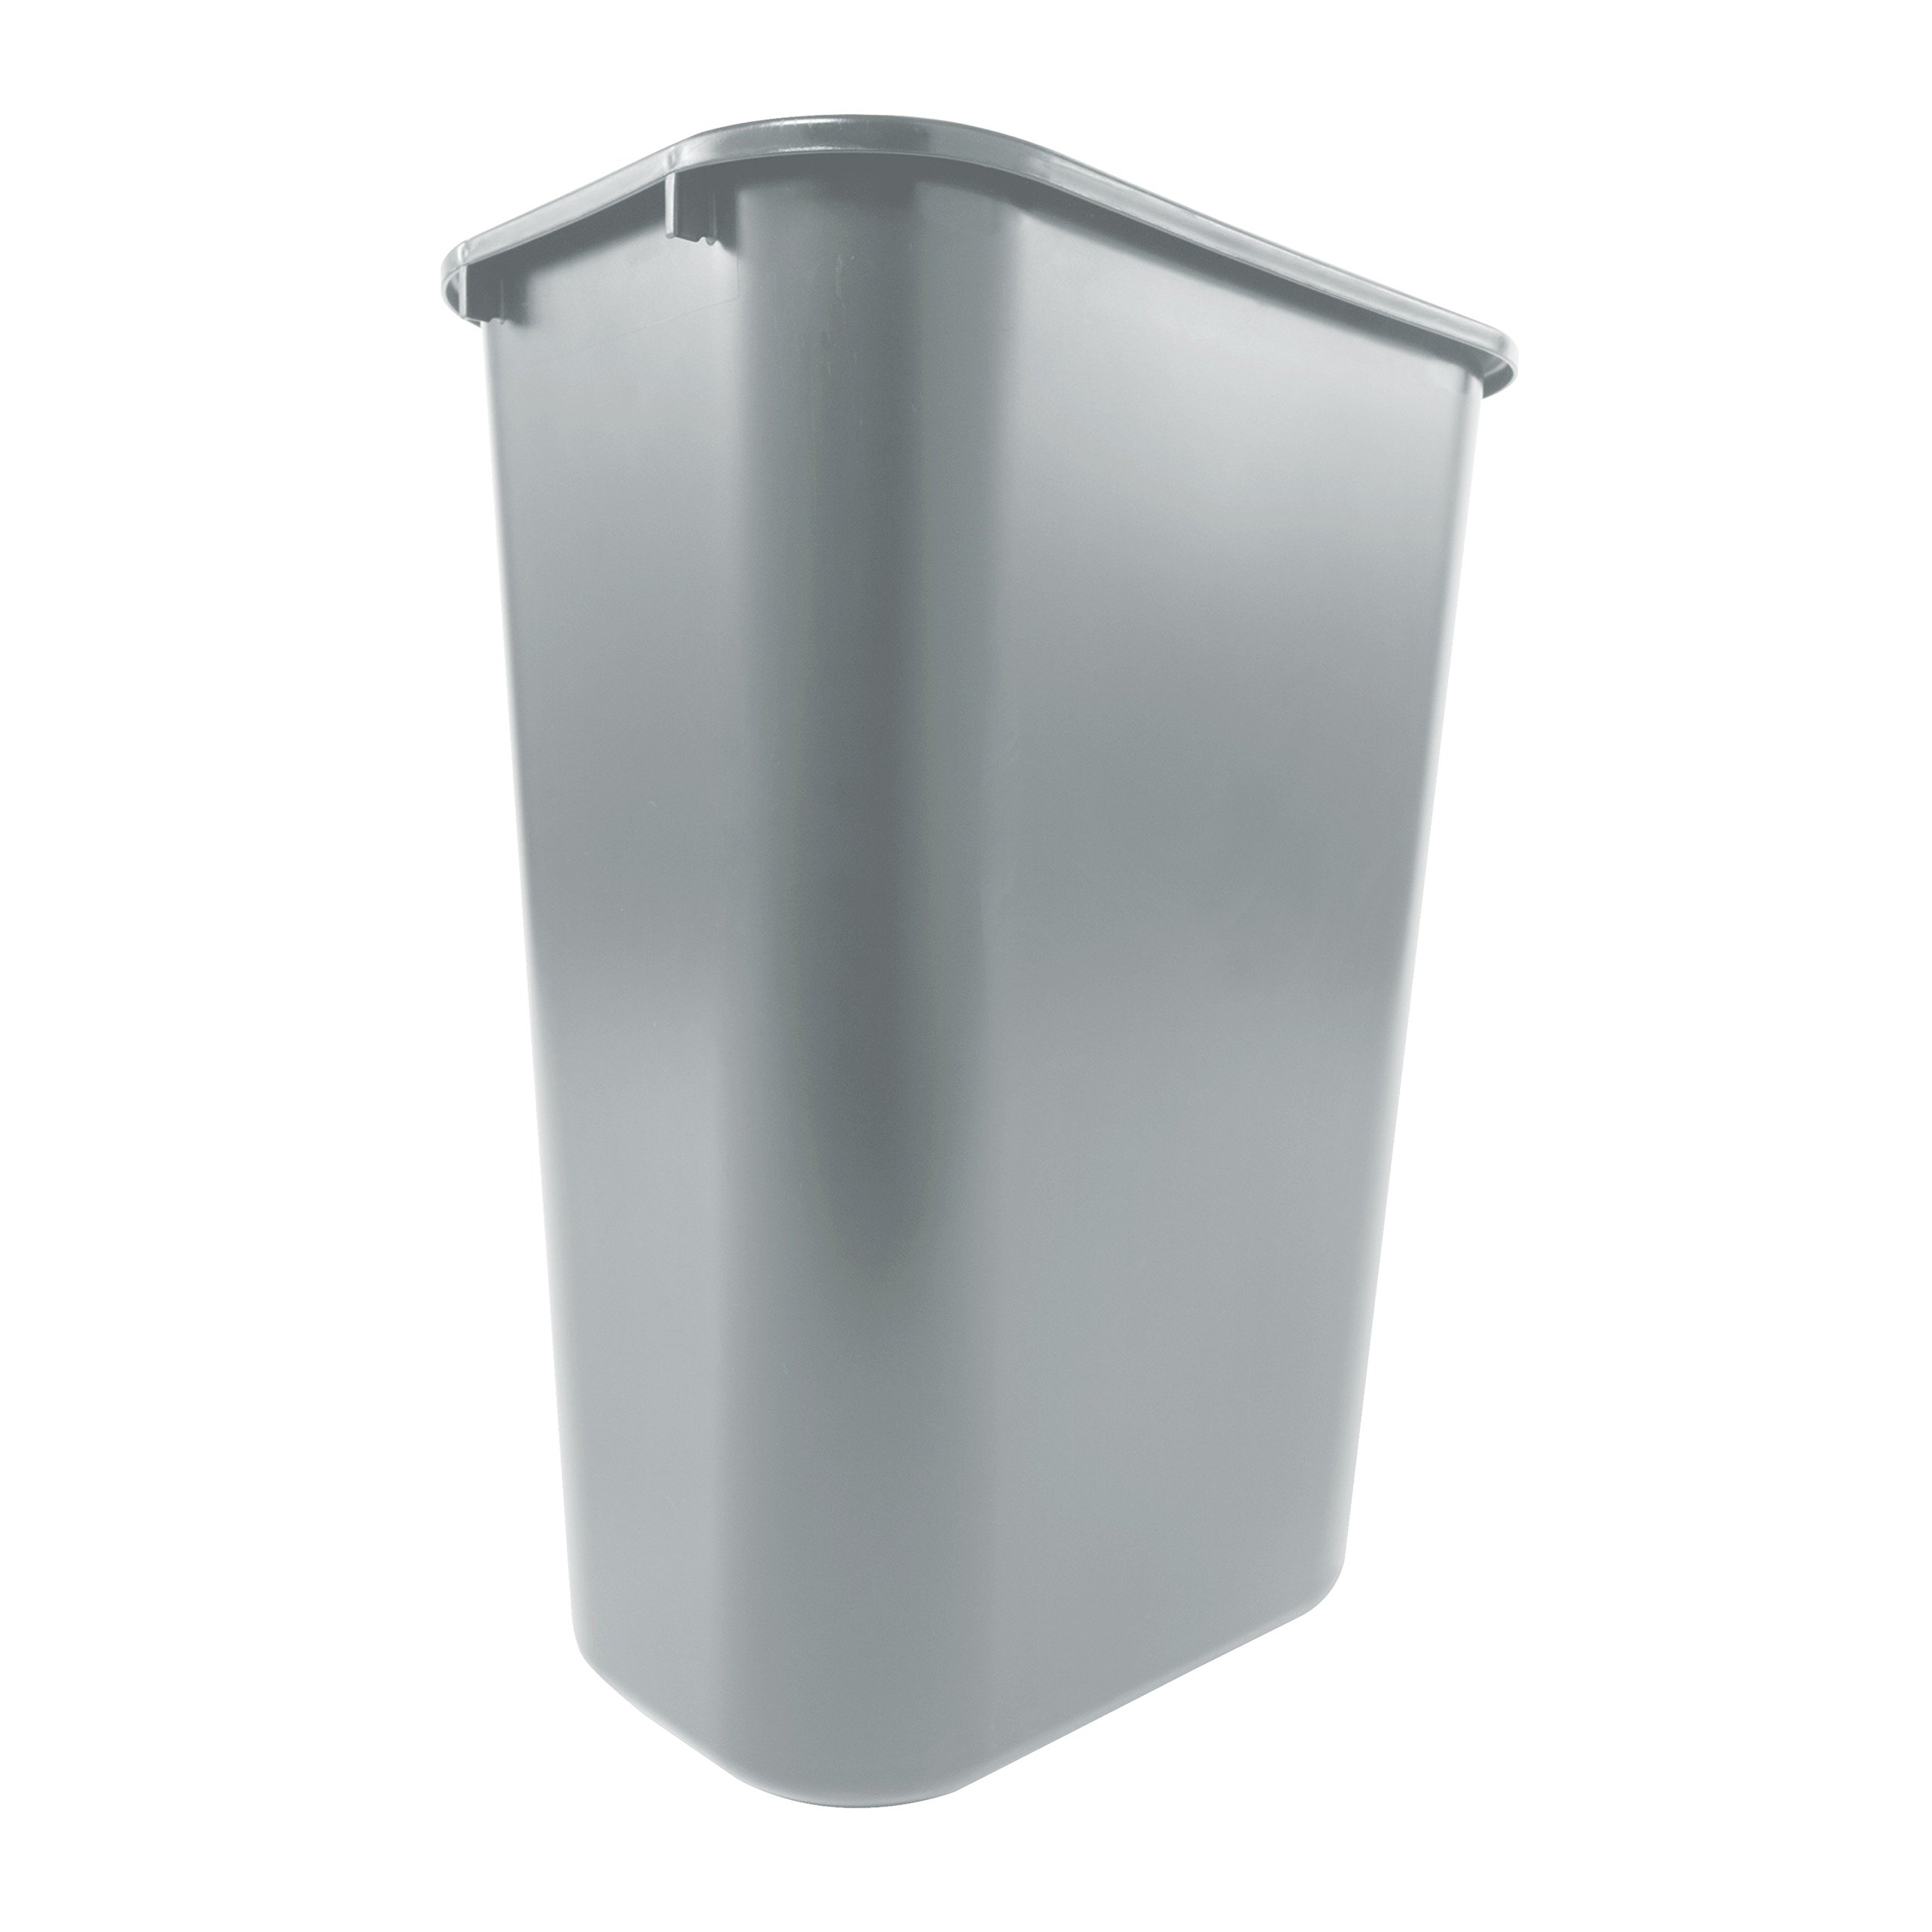 Rubbermaid Commercial Products Fg295700Gray Plastic Resin Deskside Wastebasket, 10 Gallon/41 Quart, Gray by Rubbermaid Commercial Products